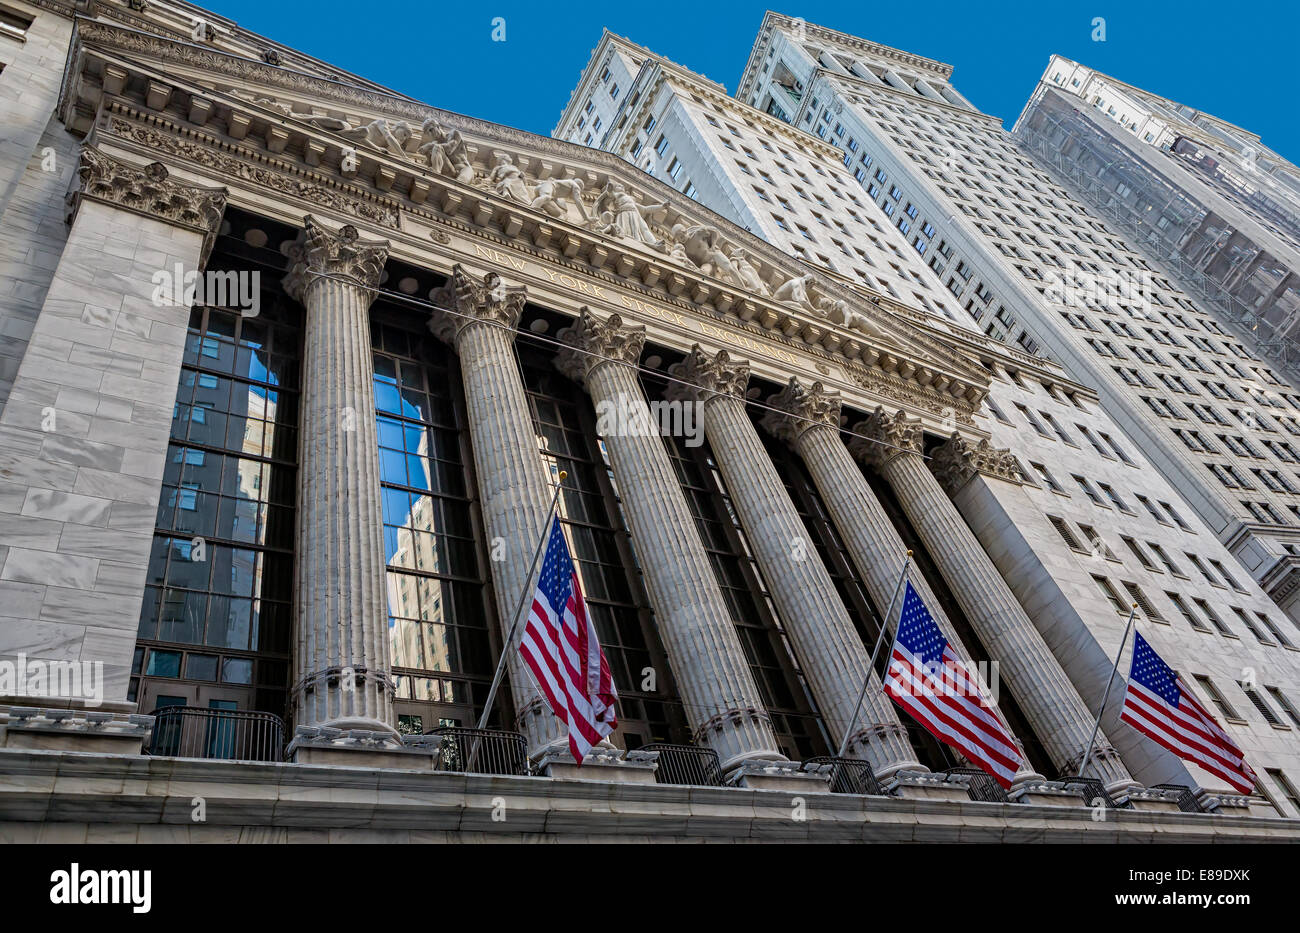 New York Stock Exchange NYSE located in 11 Wall Street in the Financial District of lower Manhattan in New York - Stock Image